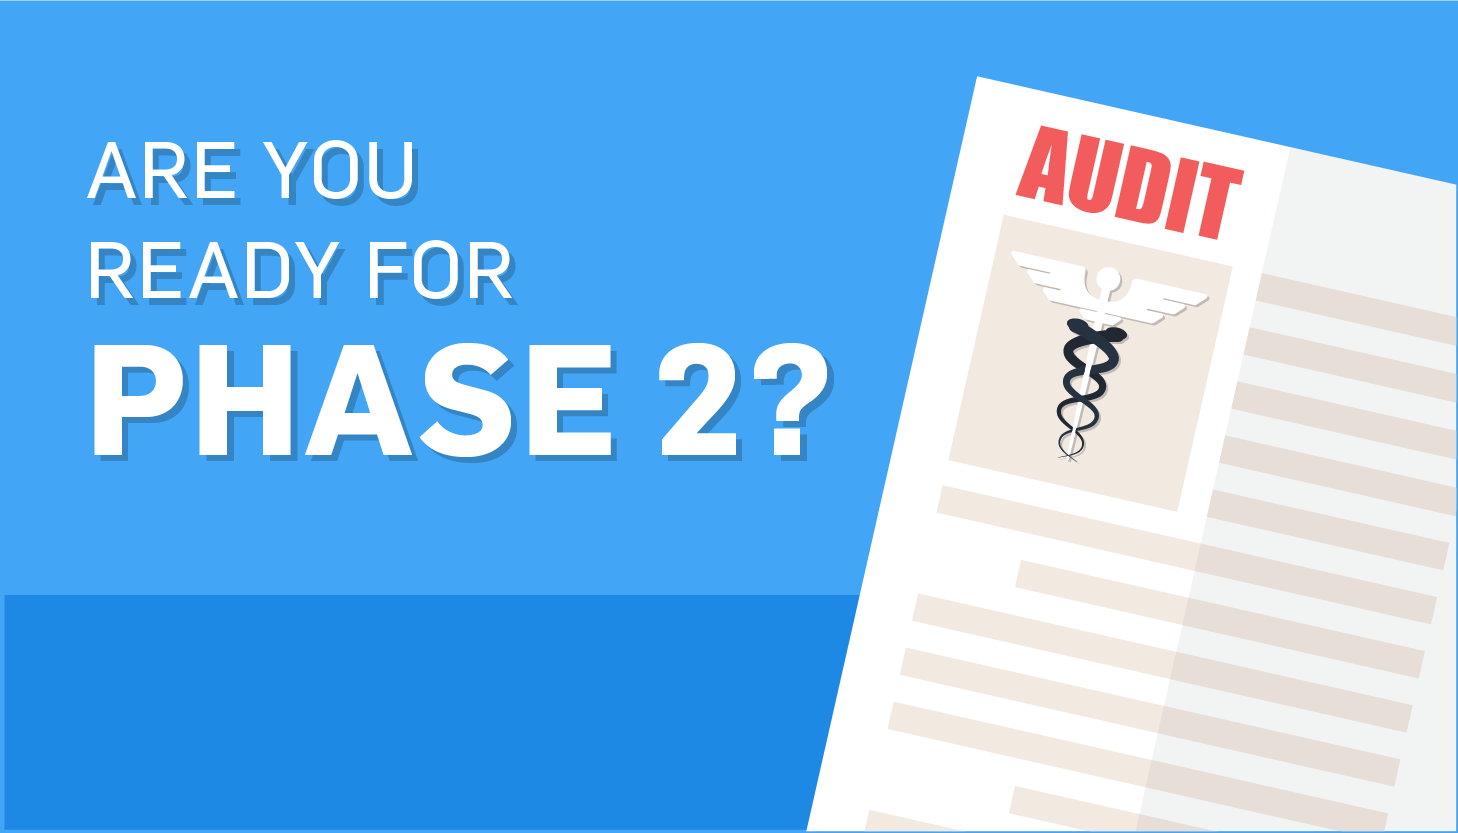 HIPAA Audits Phase 2: What You Need to Know